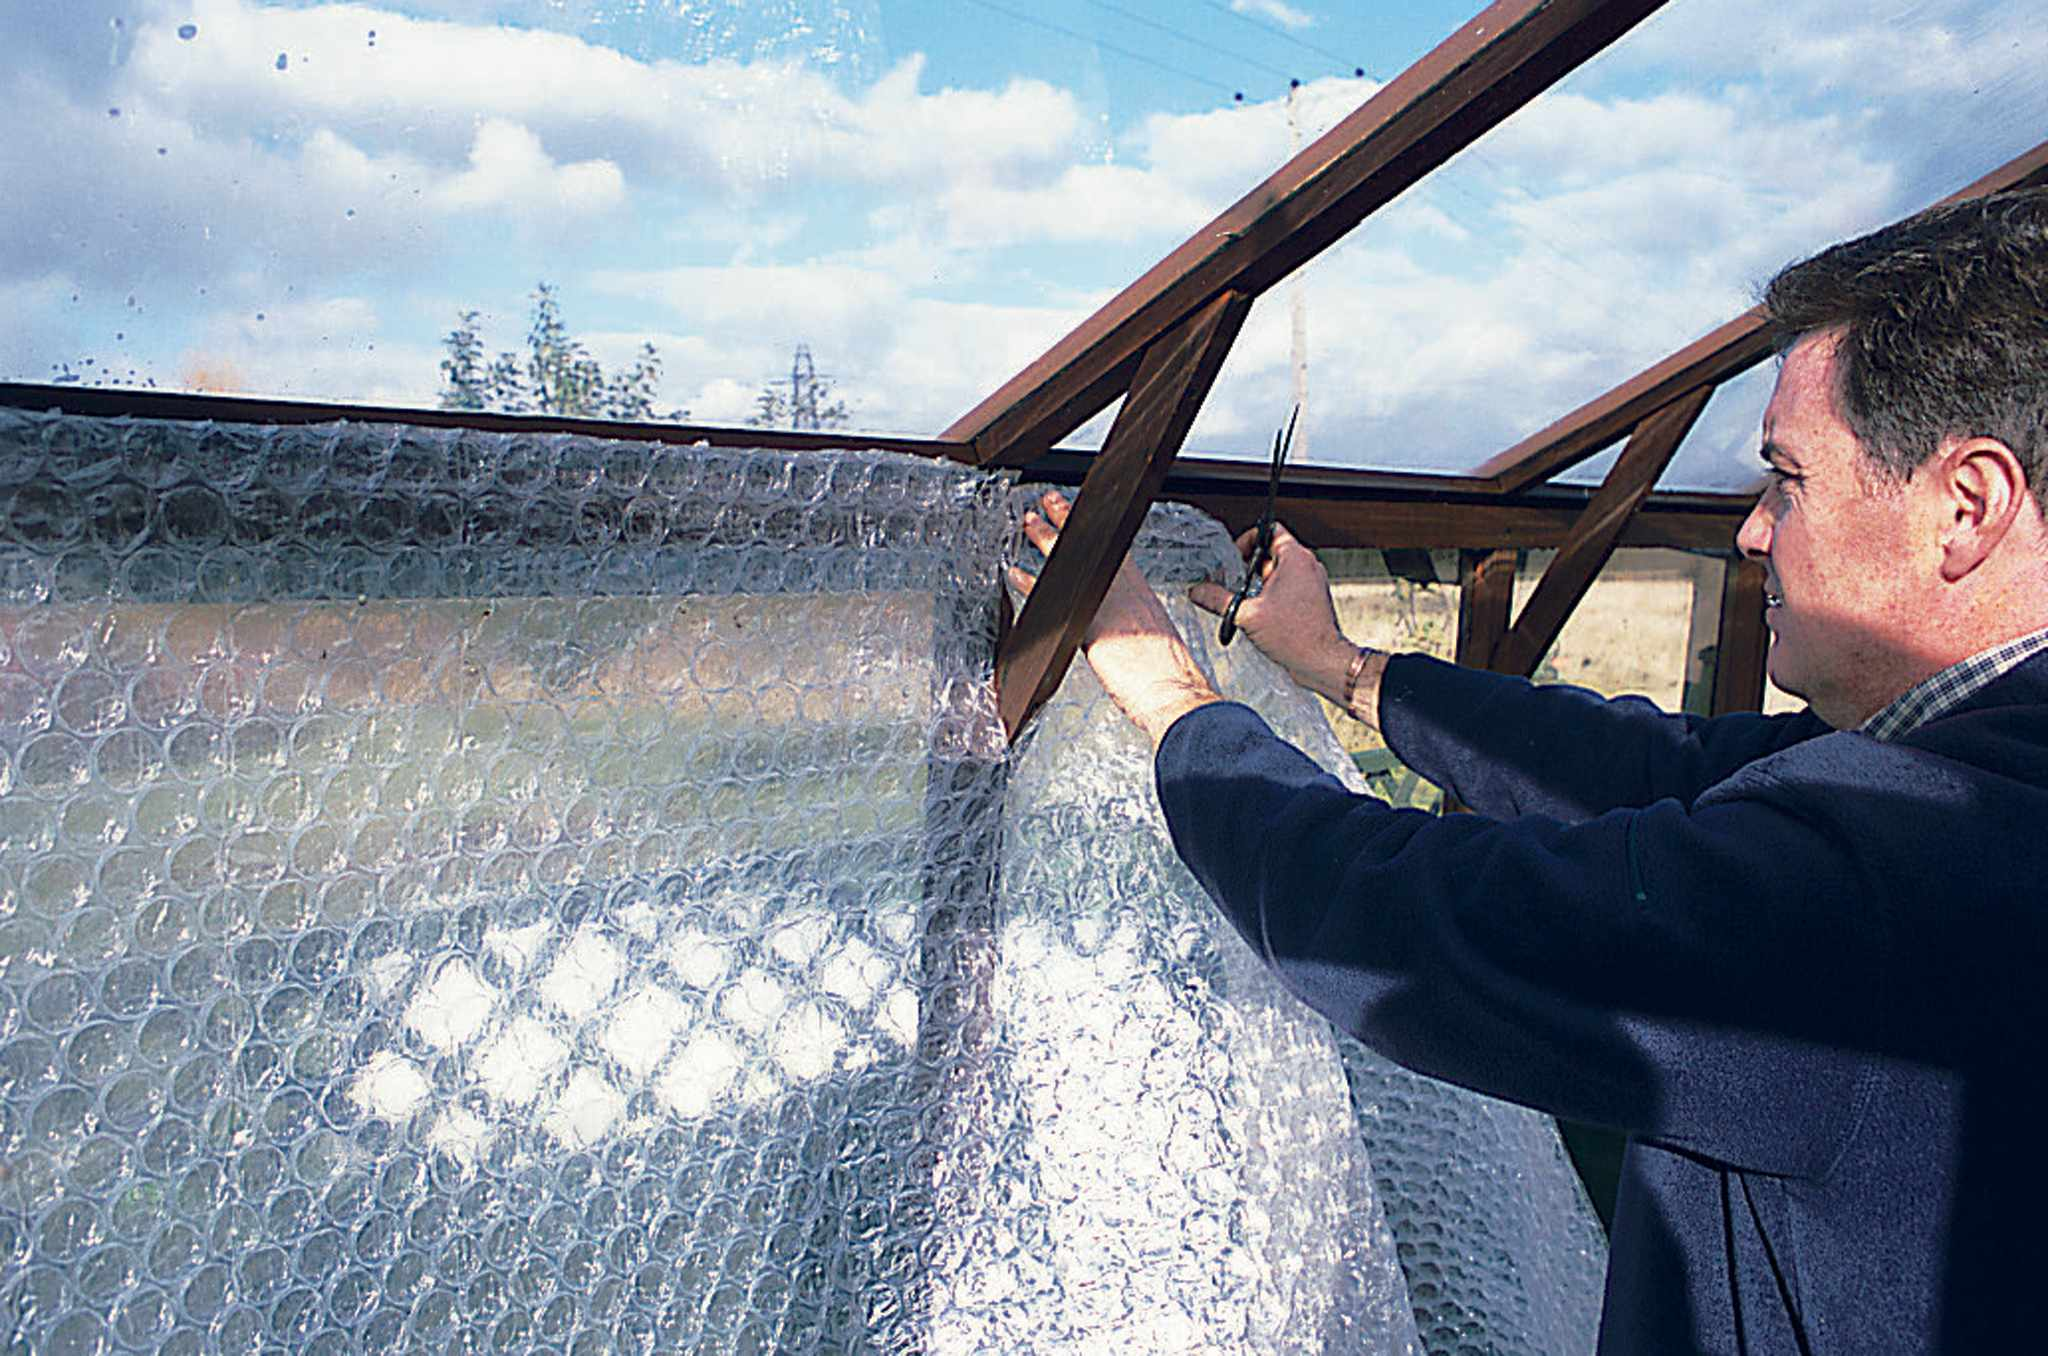 Fixing bubble wrap to the greenhouse frame